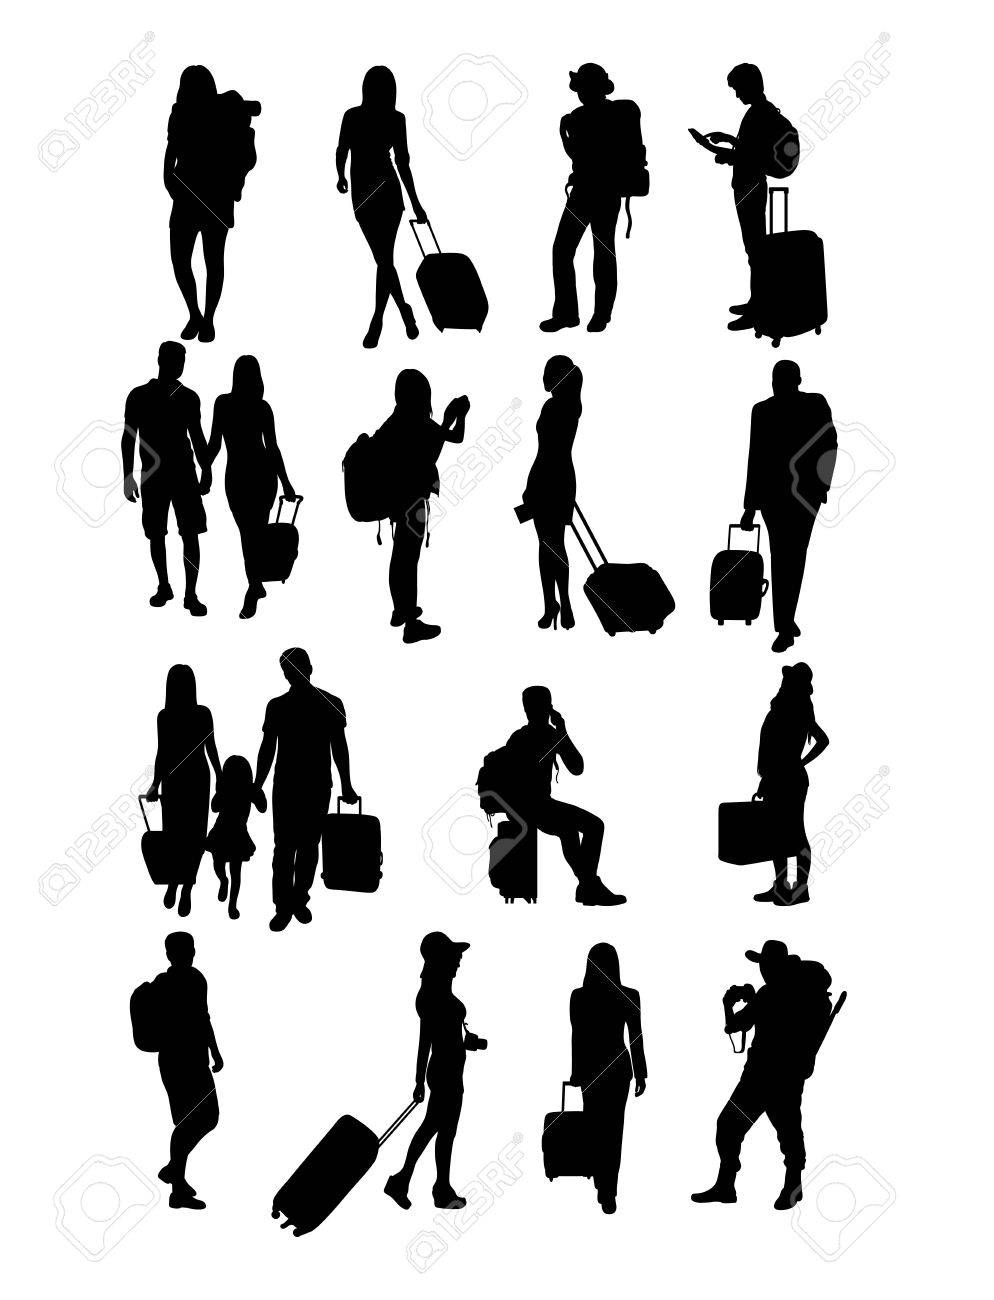 Traveling People Silhouettes, art design - 57566925